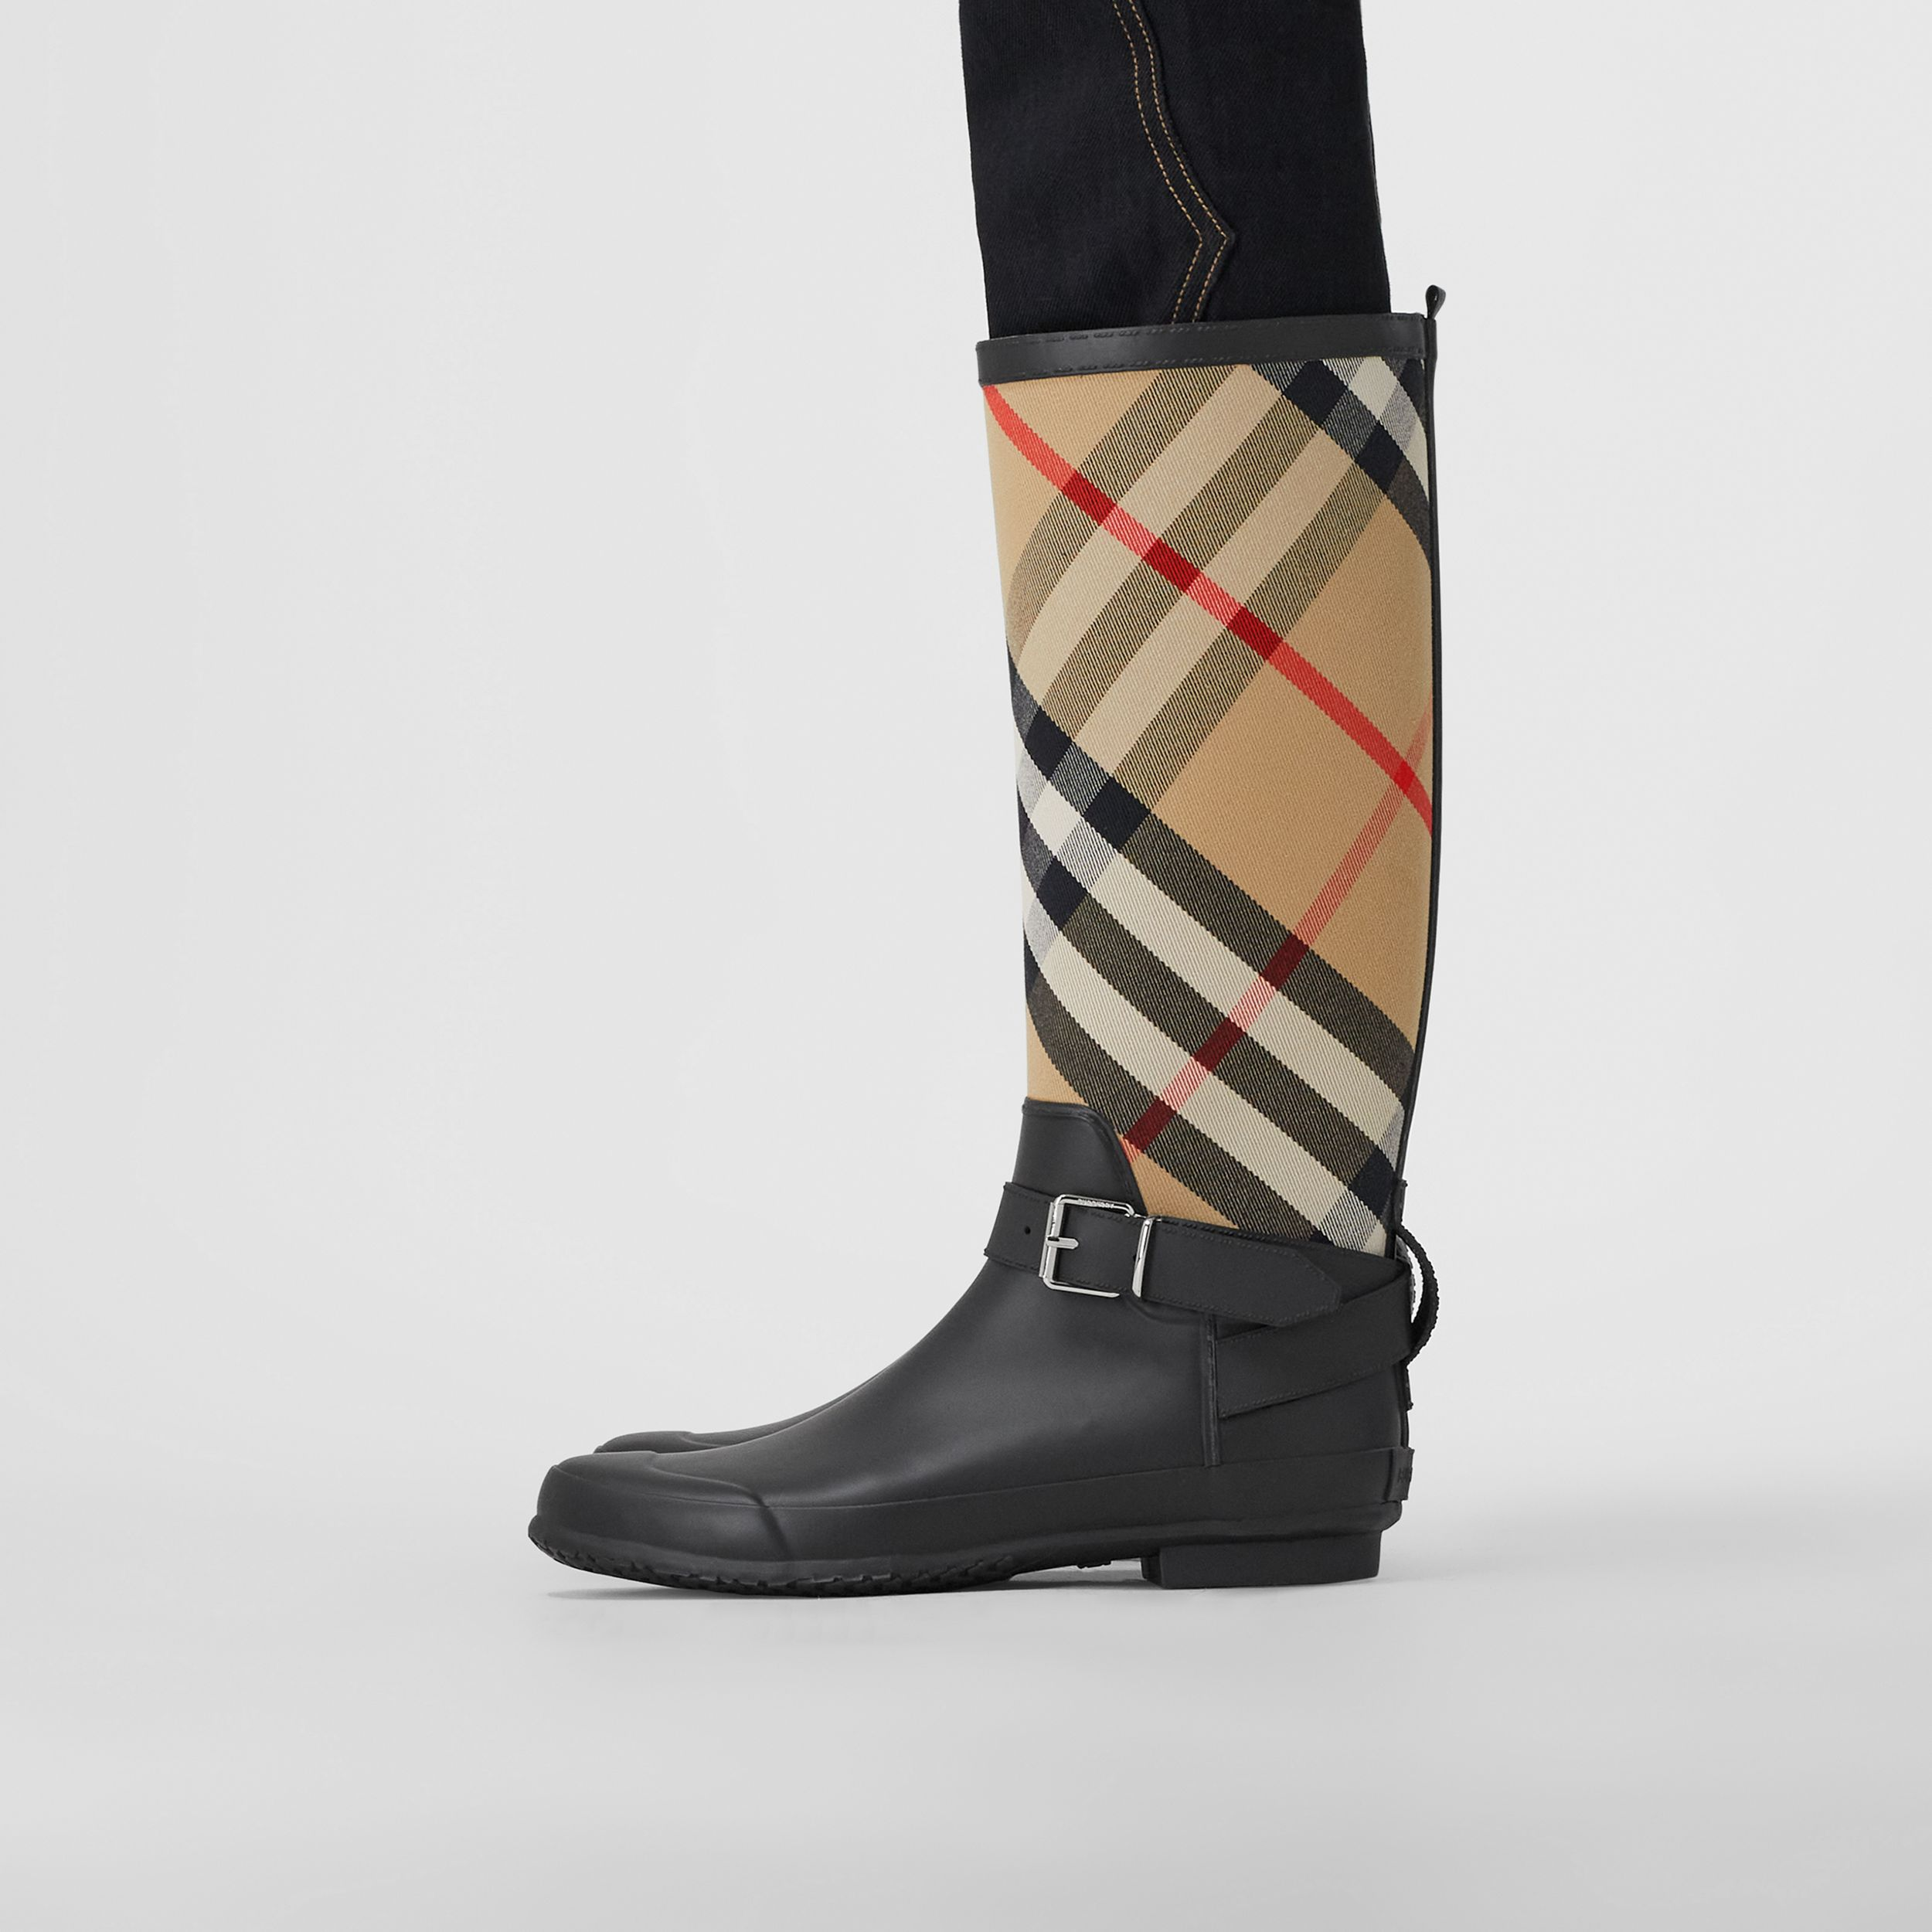 Strap Detail House Check and Rubber Rain Boots in Black/archive Beige - Women | Burberry - 3